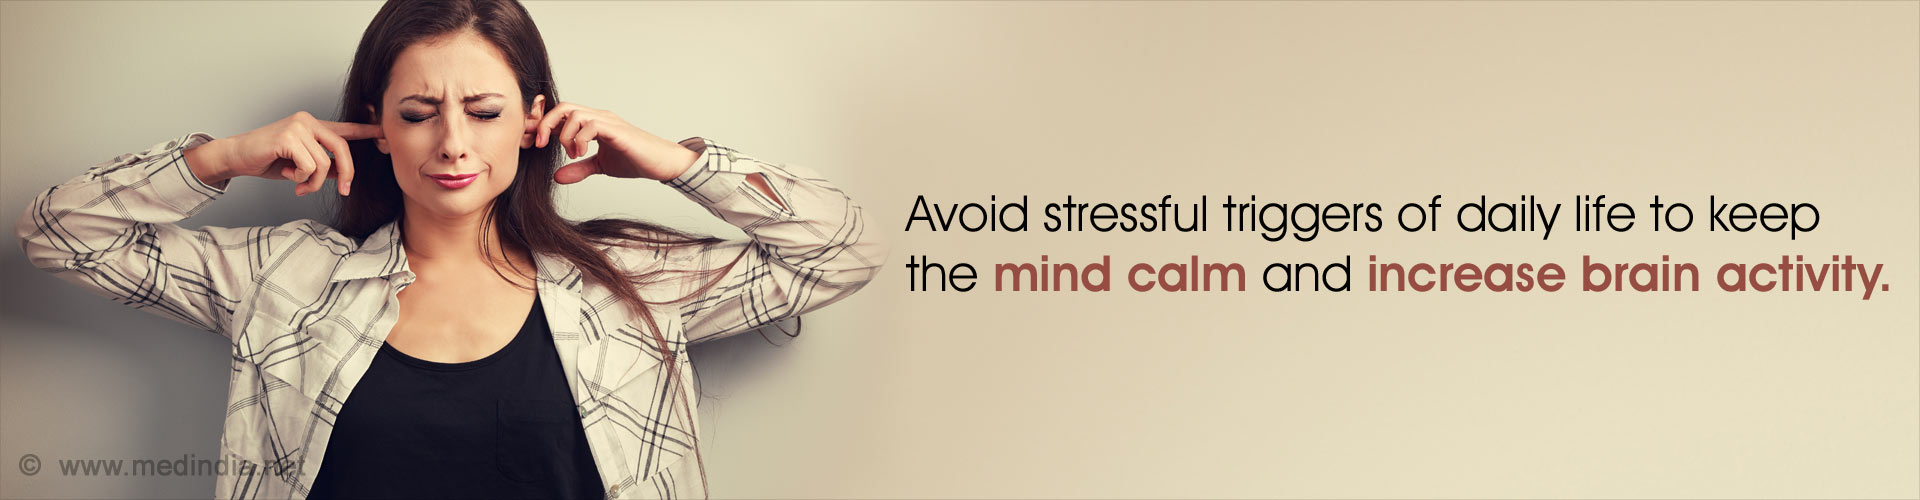 Avoid stressful triggers of daily life to keep the mind calm and increase brain activity.